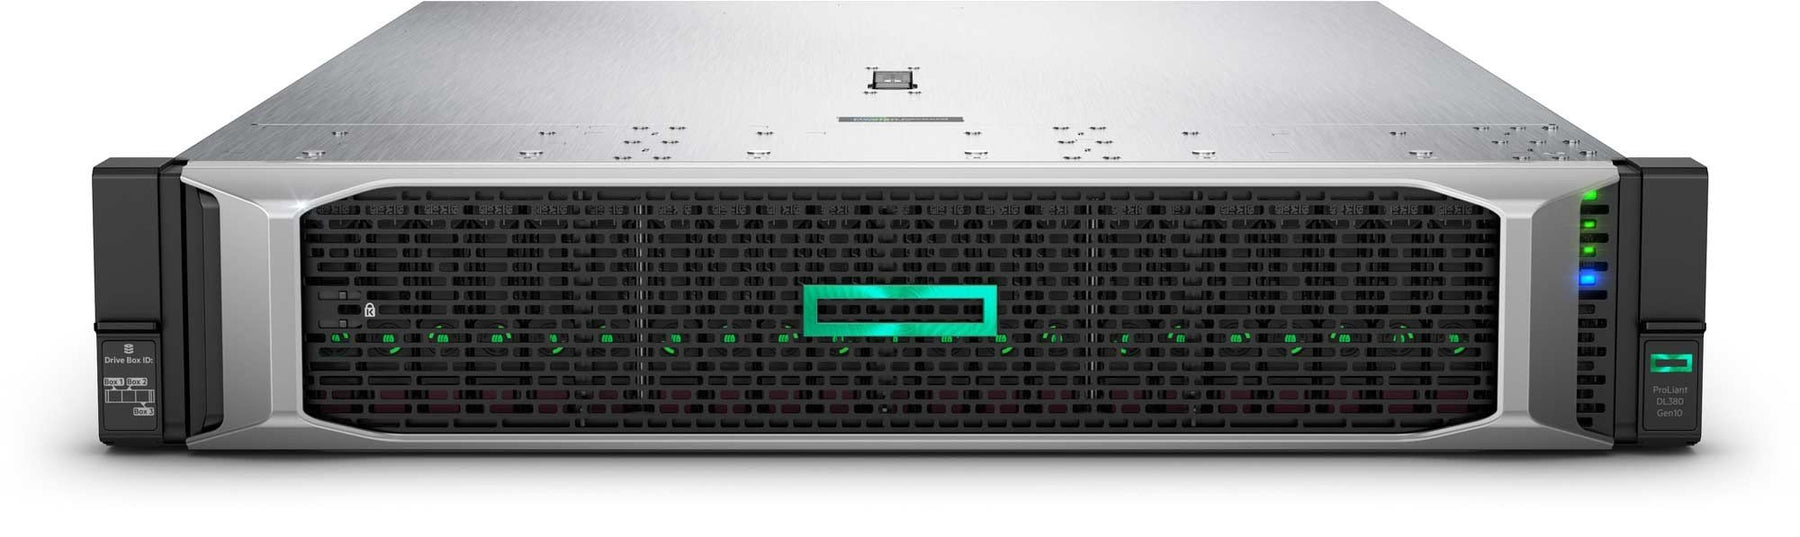 P24841-B21 - HPE DL380 GEN10 4210R 2.4 GHz 1P 32G 8SFF Server